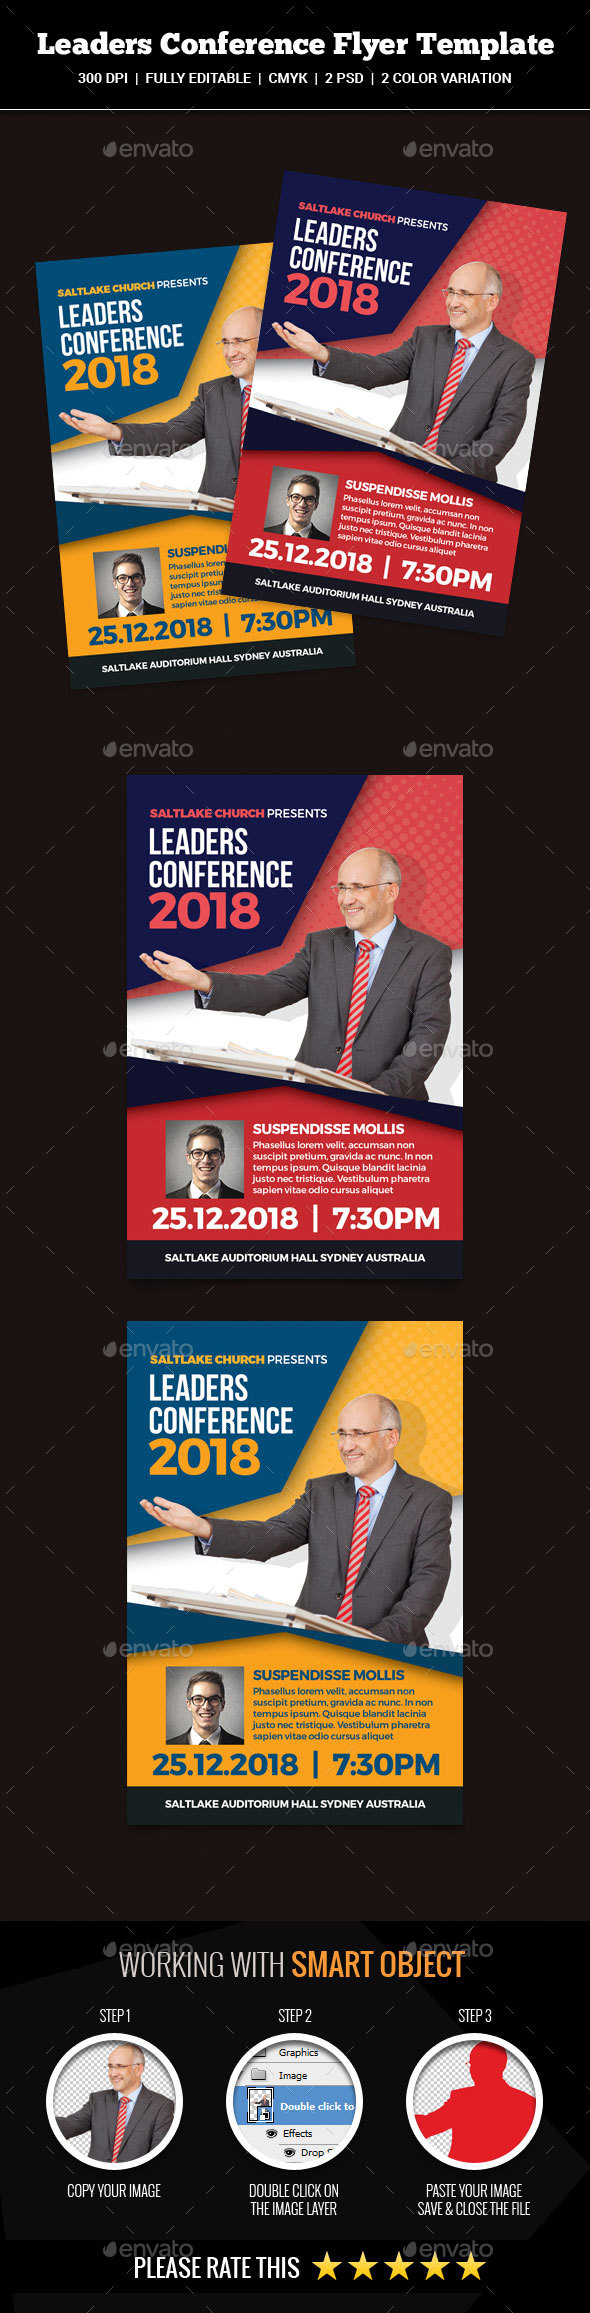 Leaders Conference Flyer - Church Flyers